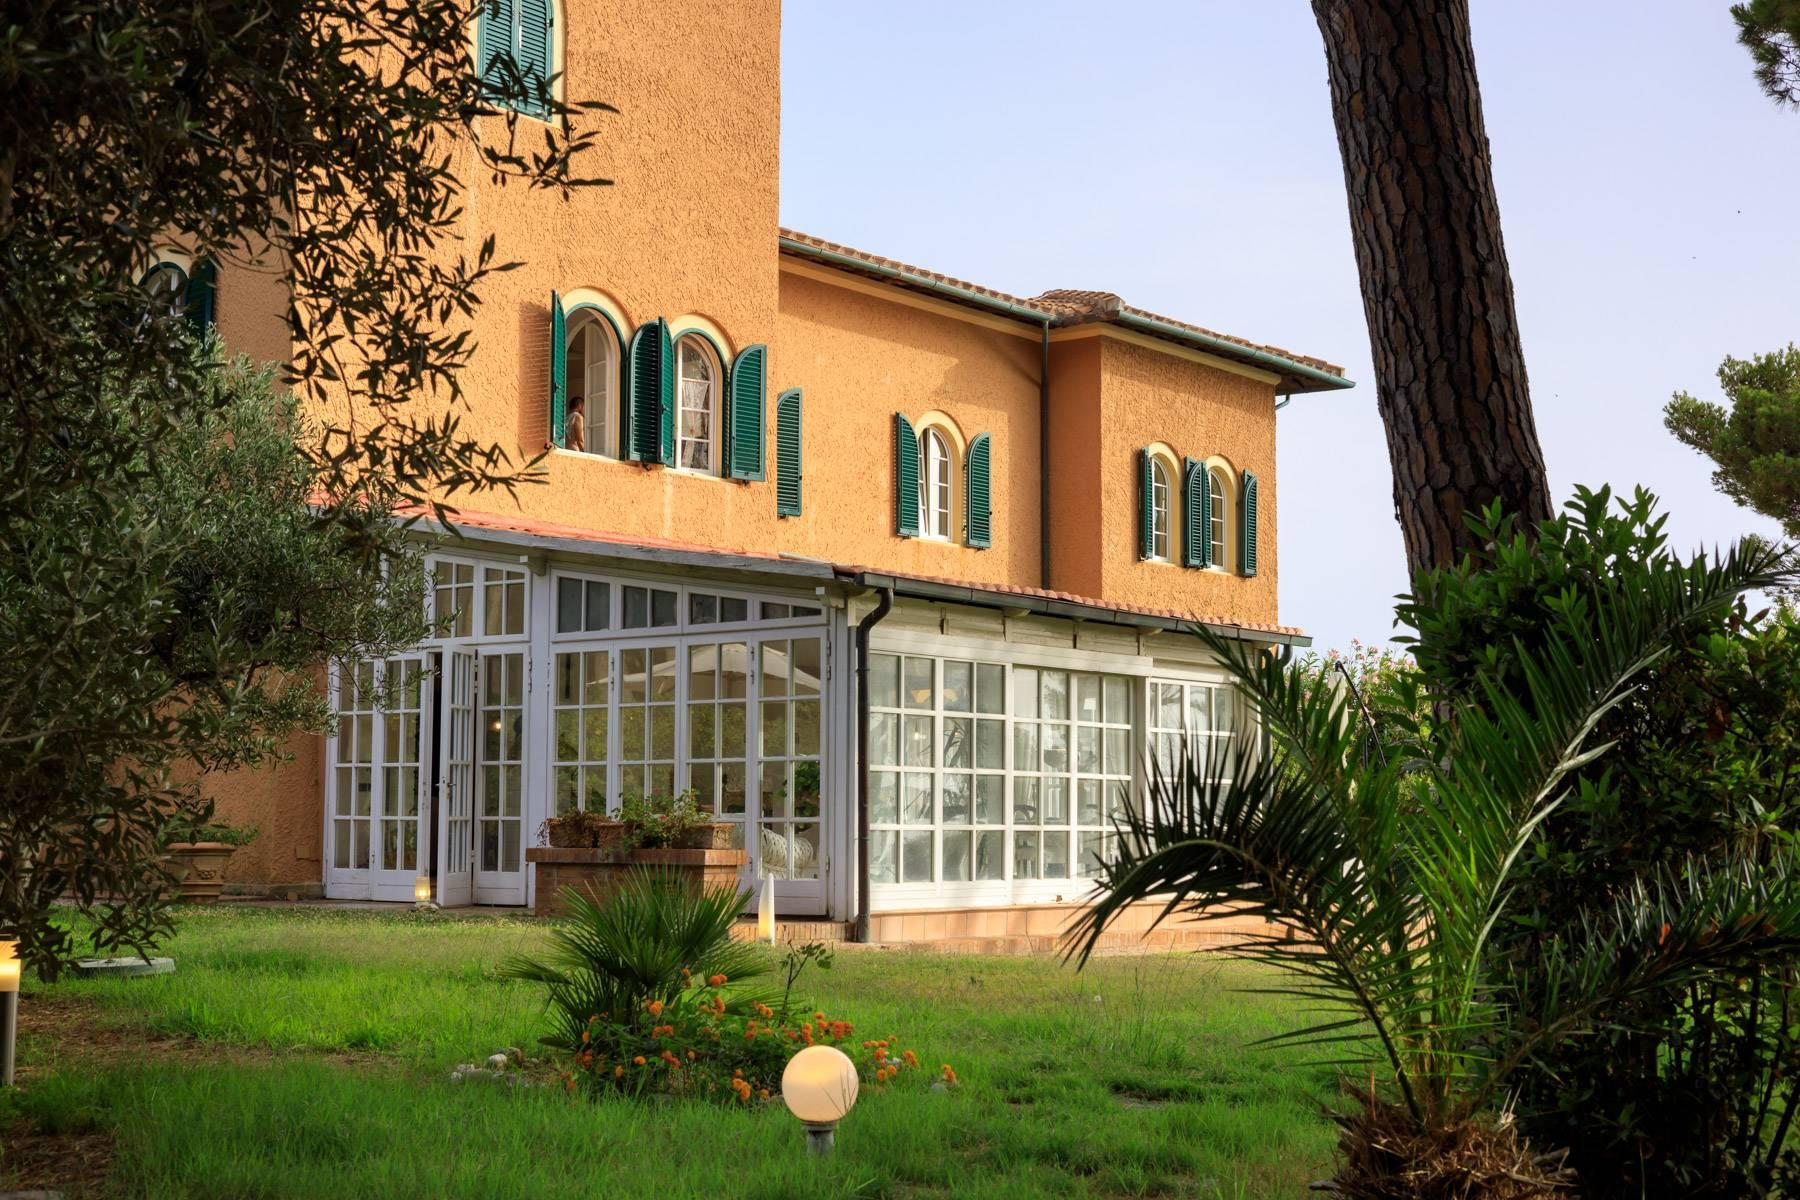 Apartment with private garden and access to the sea in a historic villa - 30